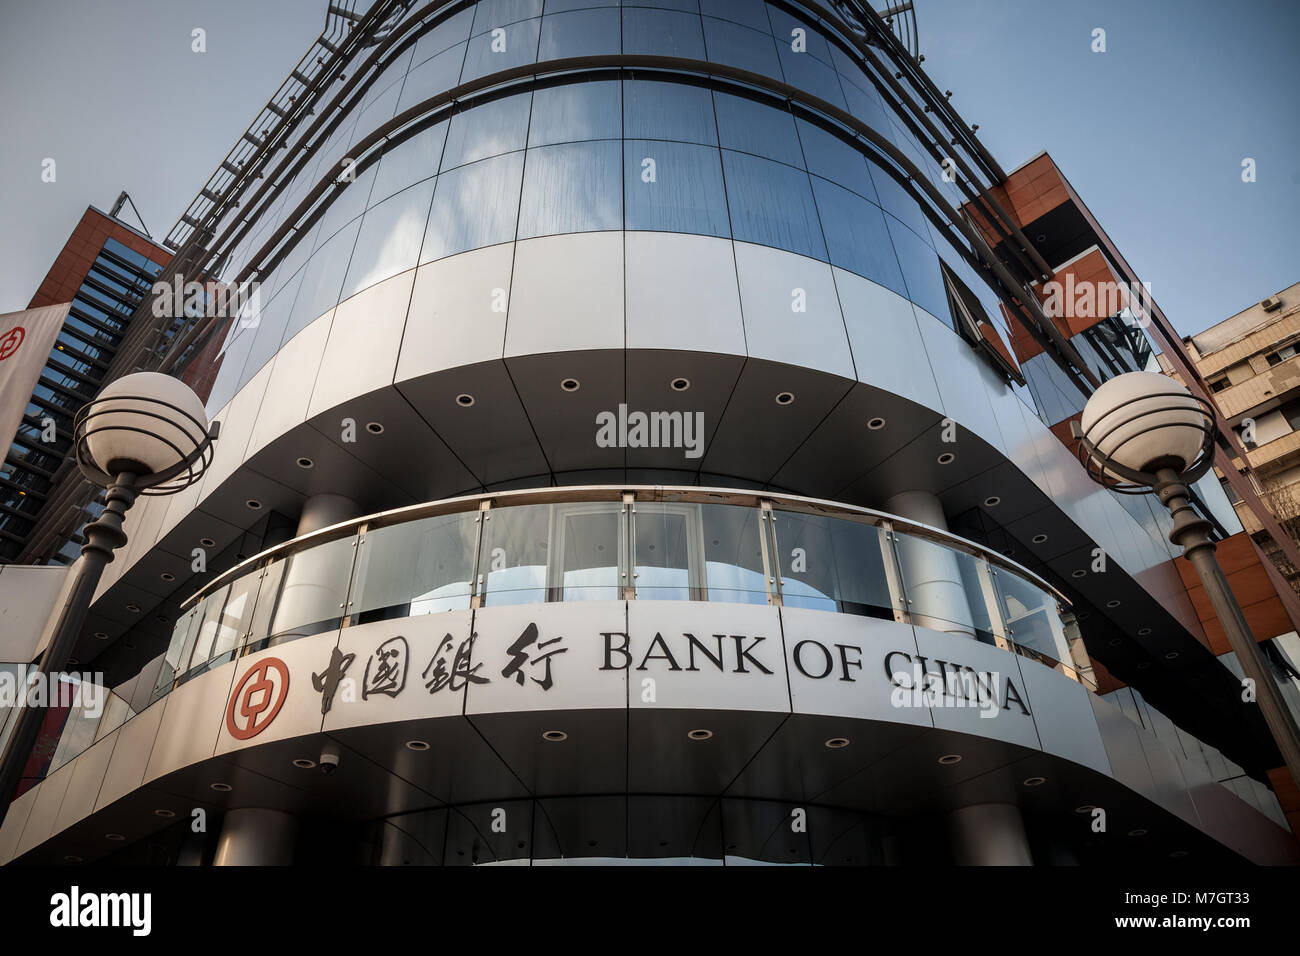 BELGRADE, SERBIA - MARCH 2, 2018: Bank of China logo on their main office for Serbia. Bank of China is one of the - Stock Image